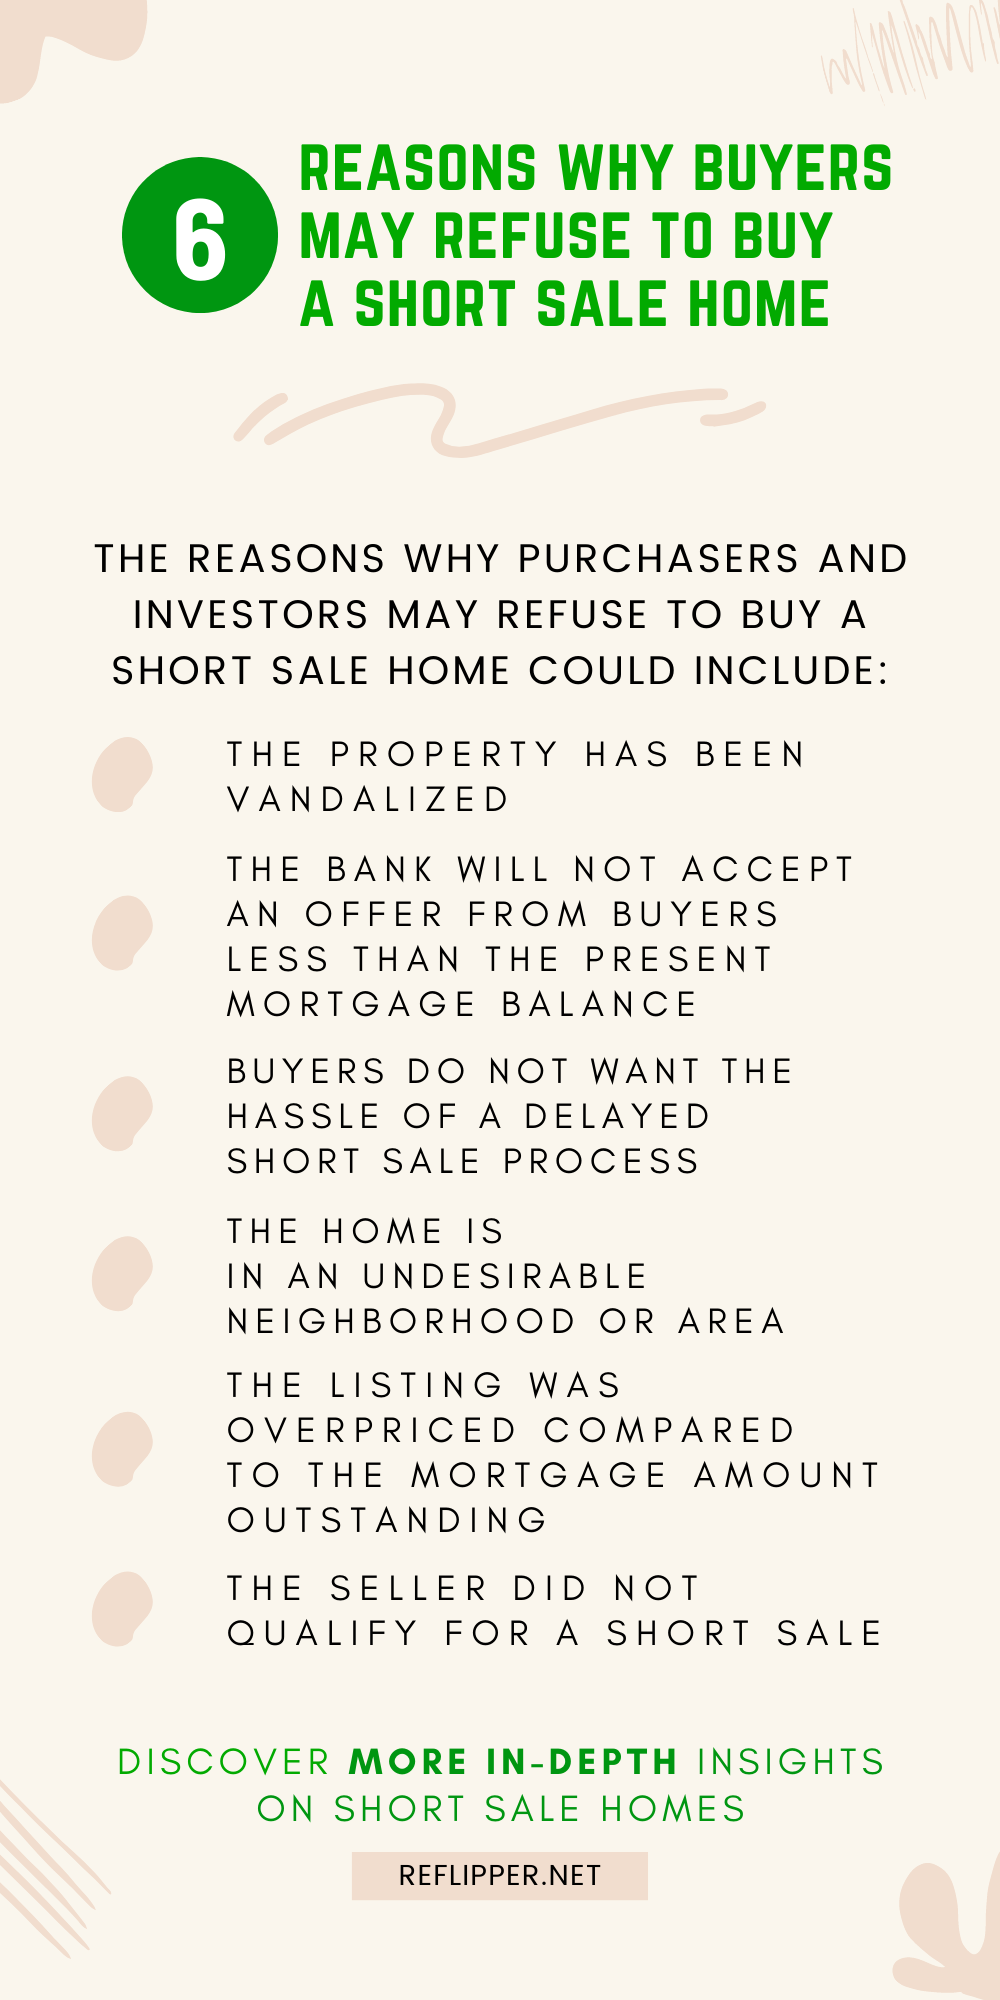 An infographic describing the 6 reasons why buyers may refuse to buy a short sale home.